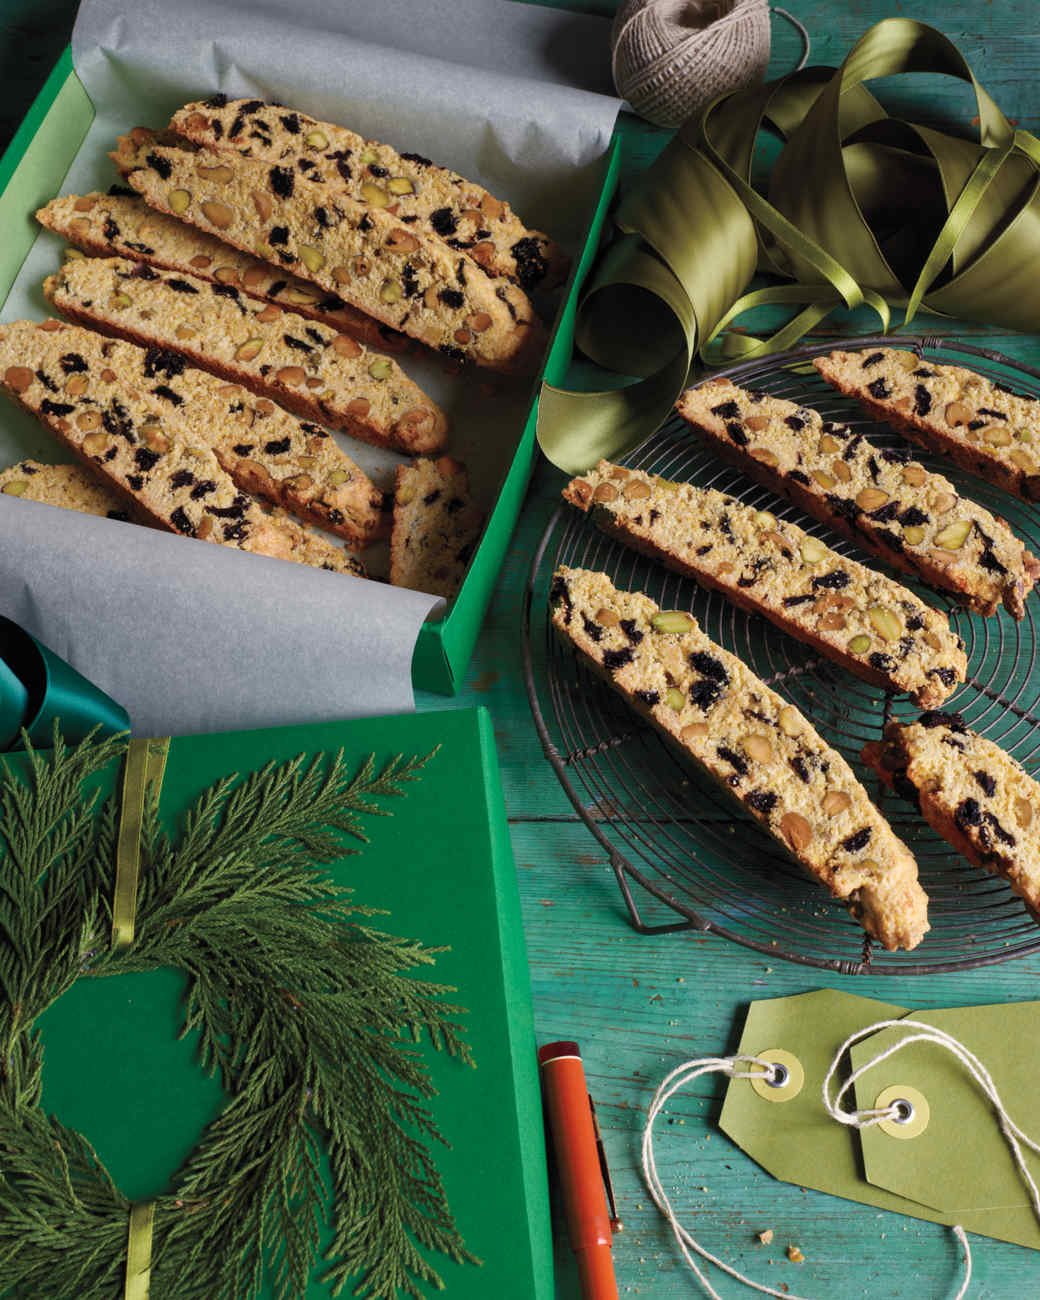 Gift wrapping ideas for home made baked goods - Coconut Pistachio Biscotti